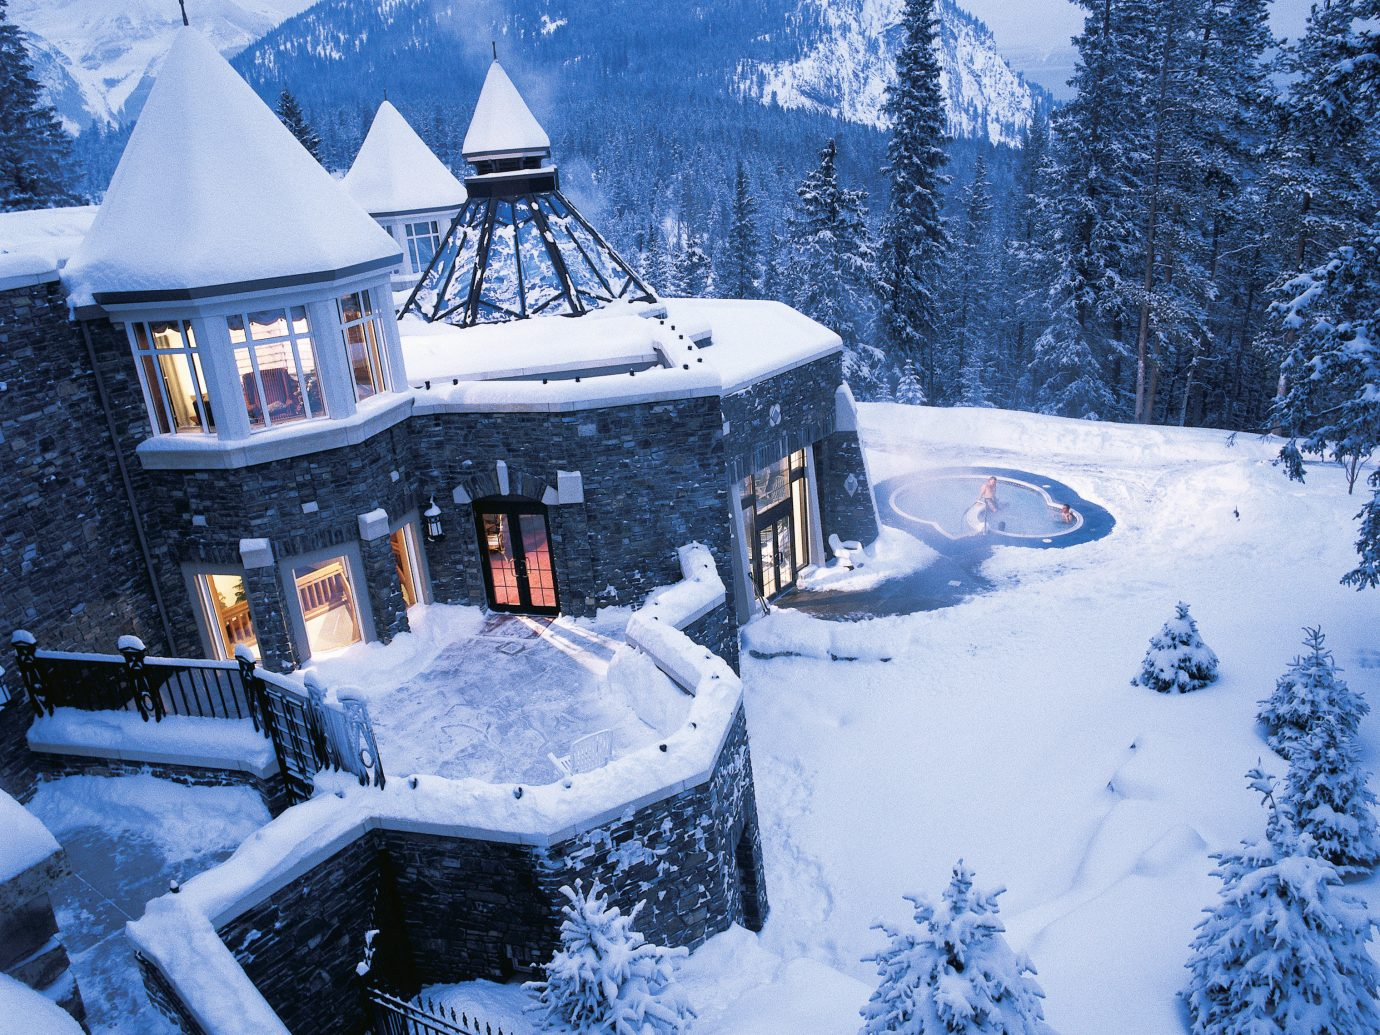 Architecture Buildings Exterior Health + Wellness Hotels Mountains Outdoors Resort Scenic views Spa Retreats Trip Ideas snow outdoor tree sky Winter Nature weather season mountain freezing blizzard